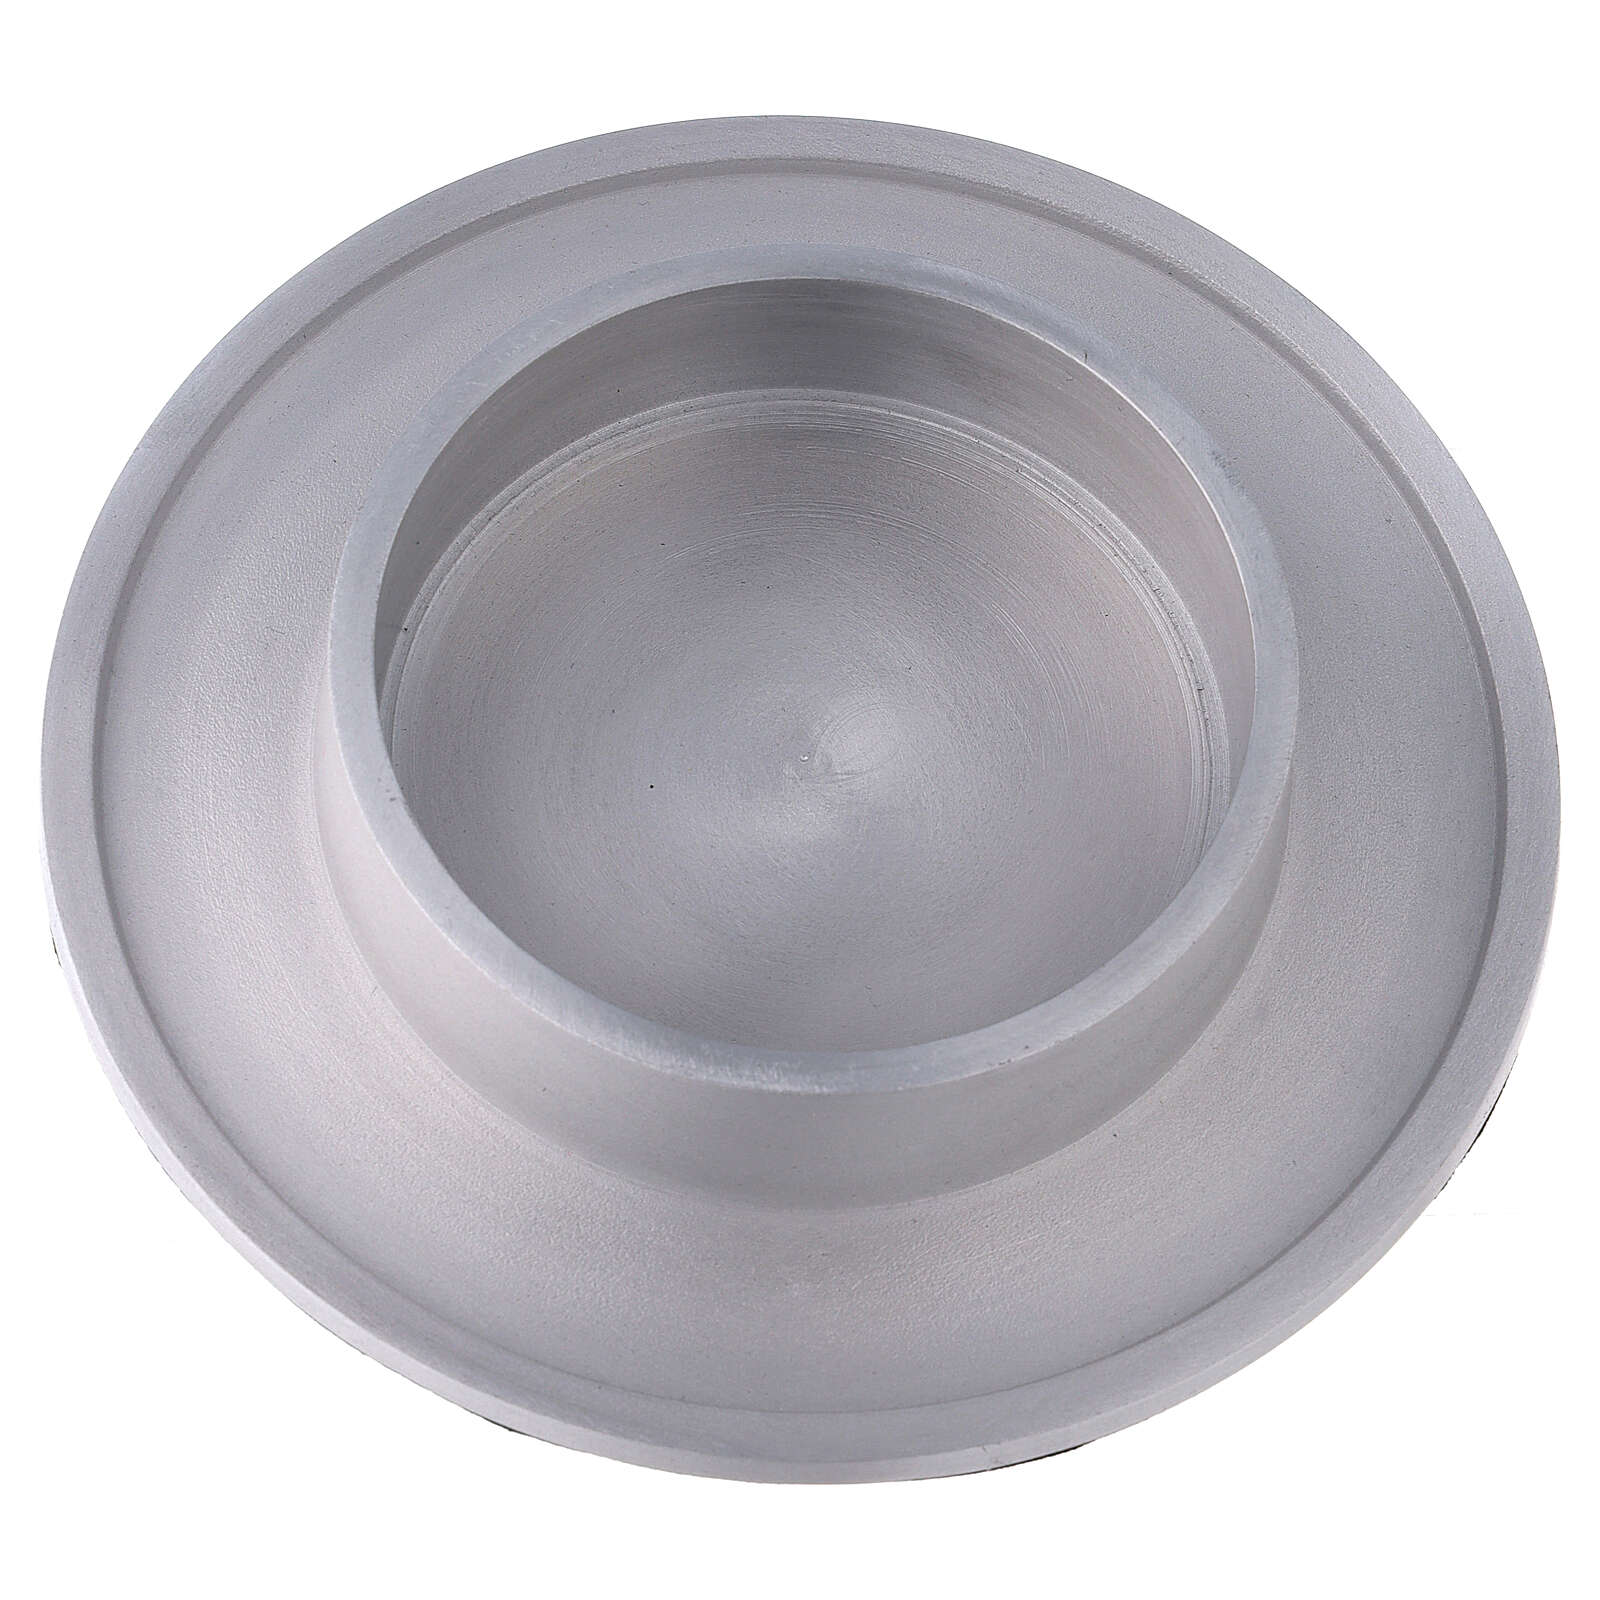 Round candle holder of aluminium with satin finish 4 in 4